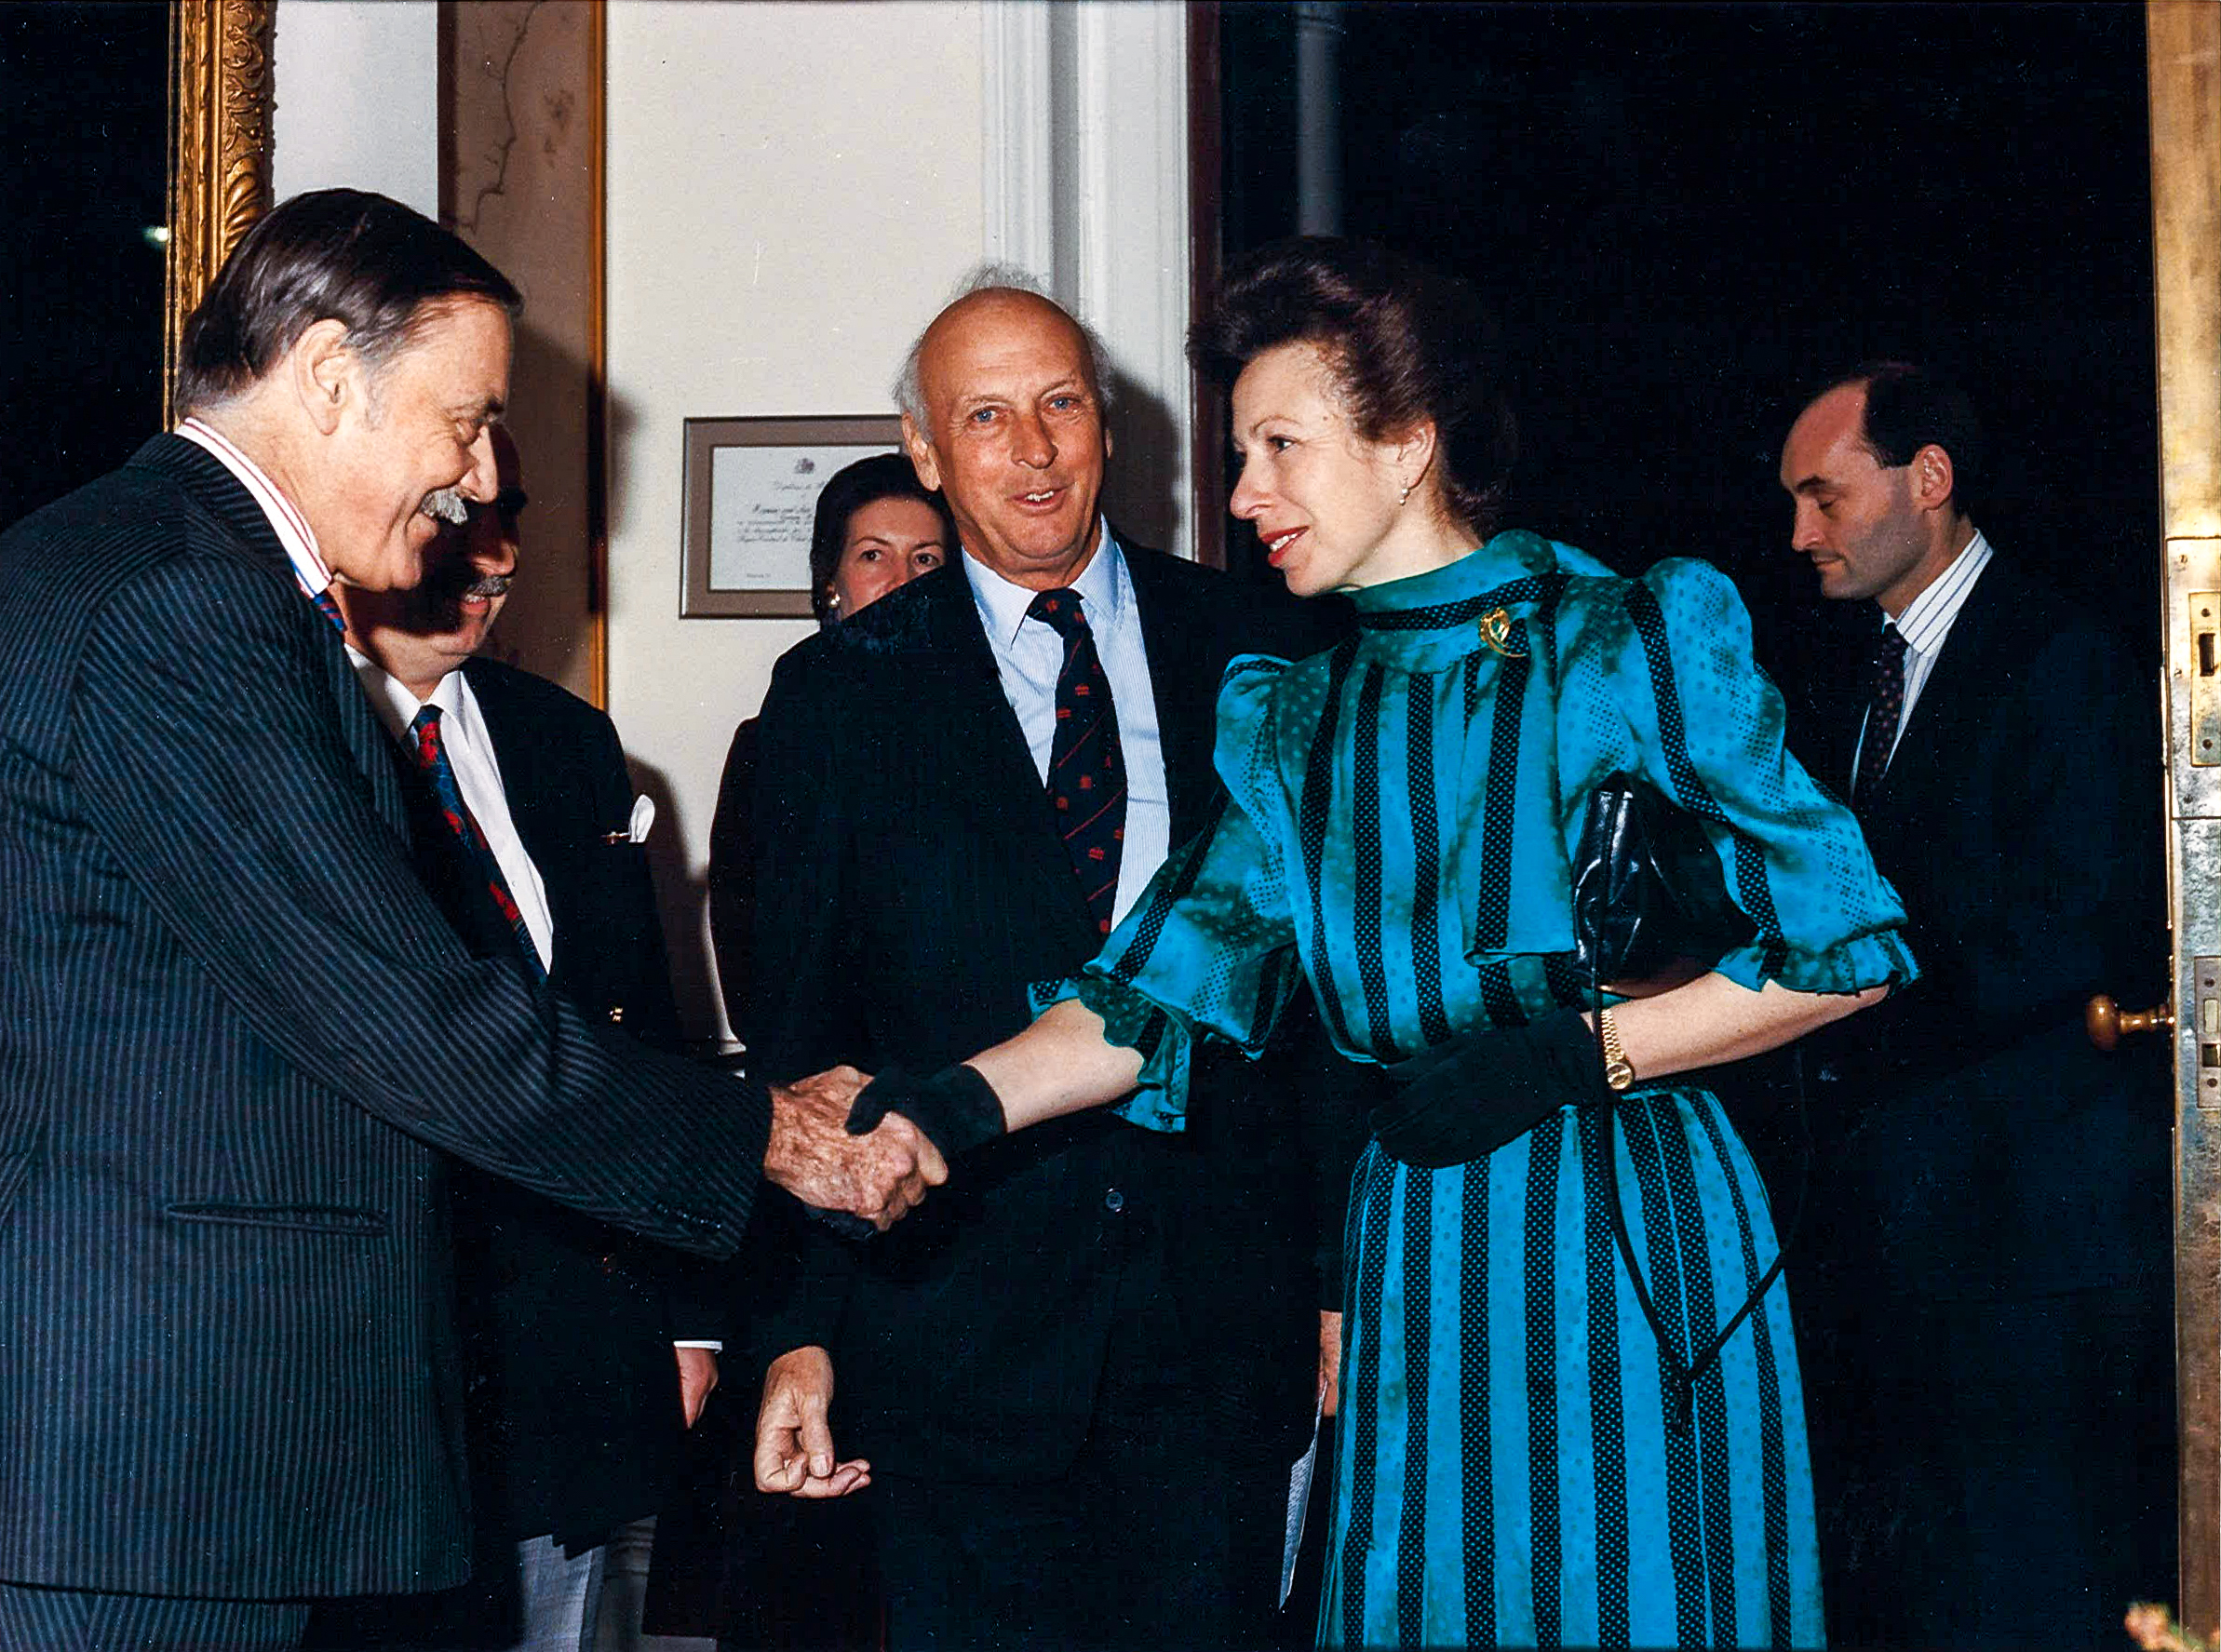 Viscount Montgomery with HRH The Princess Royal and other senior Canning House figures in 1992